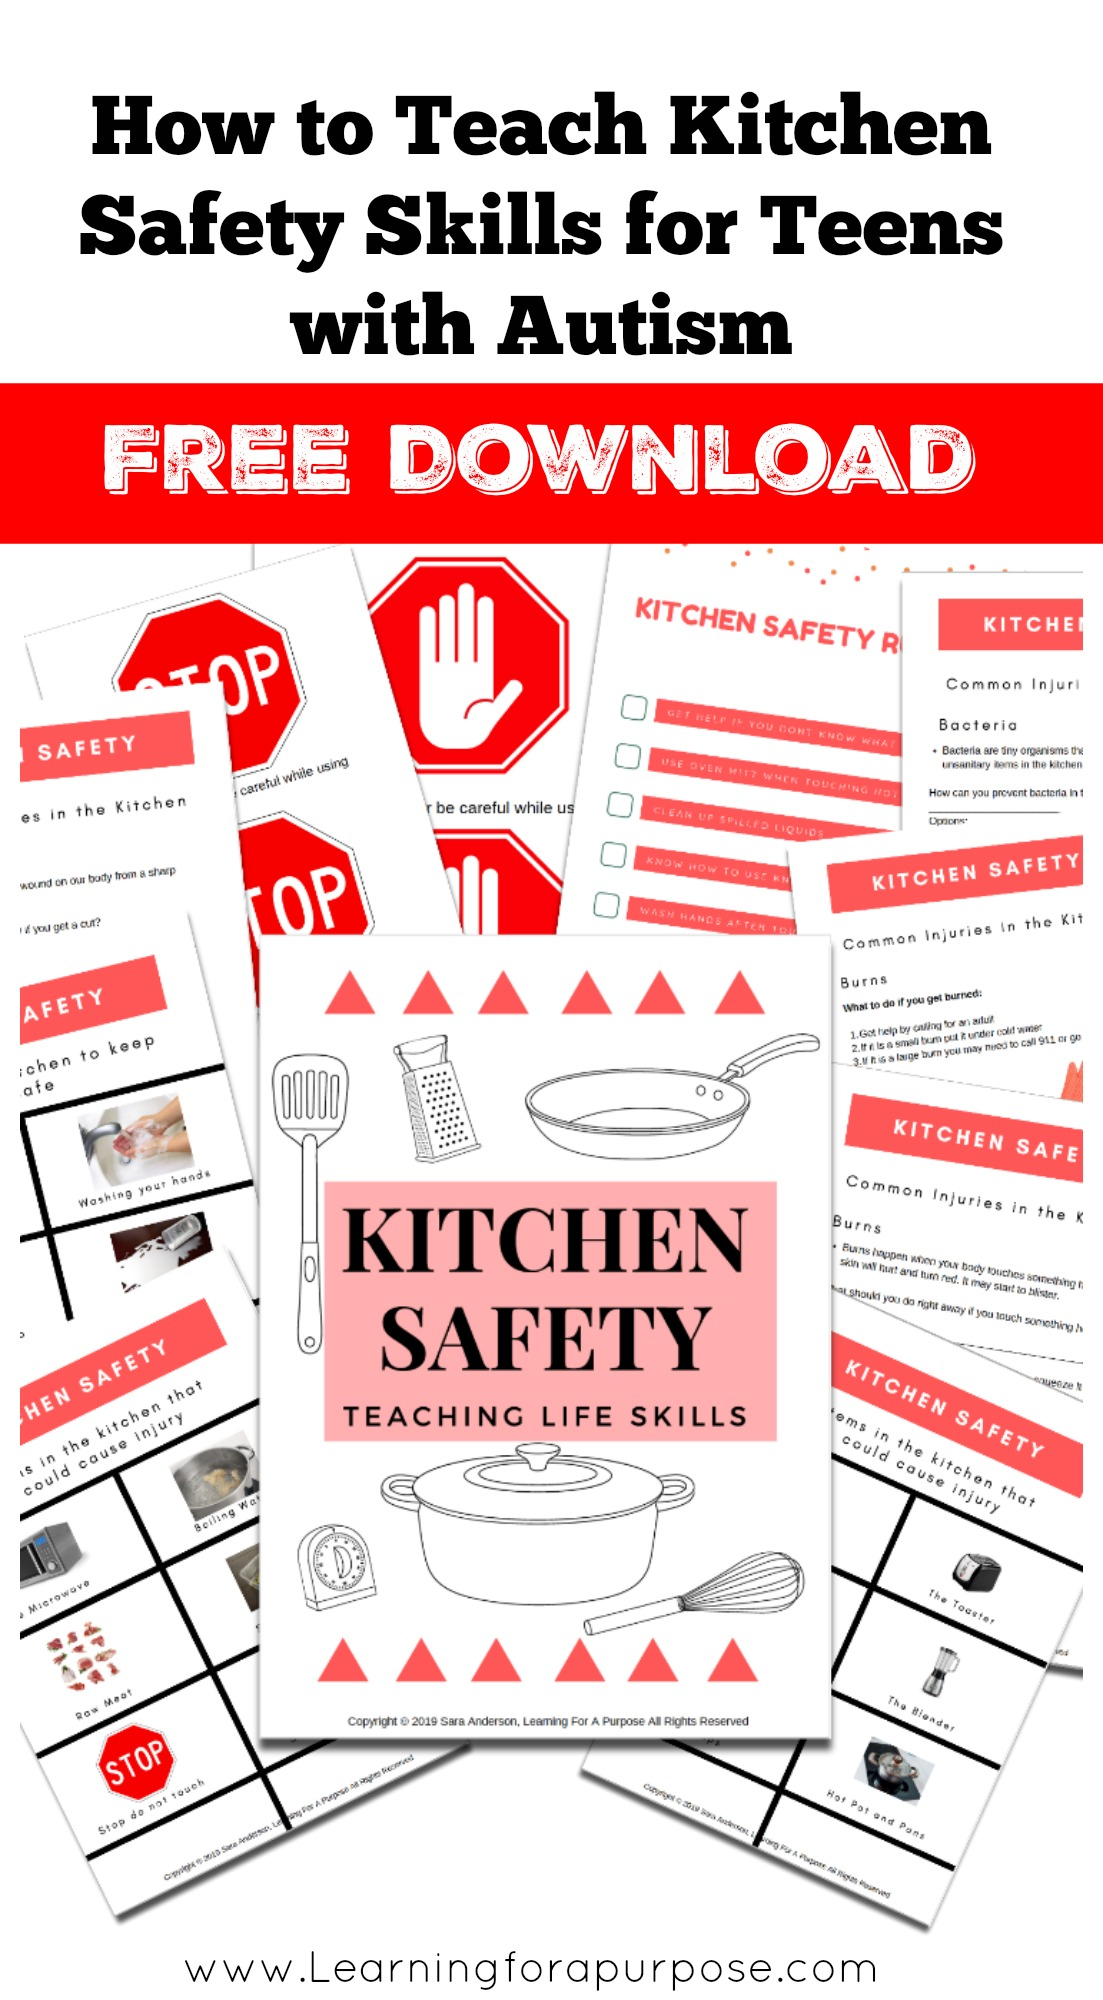 How to Teach Kitchen Safety Skills for Teens with Autism Pinterest Image free download